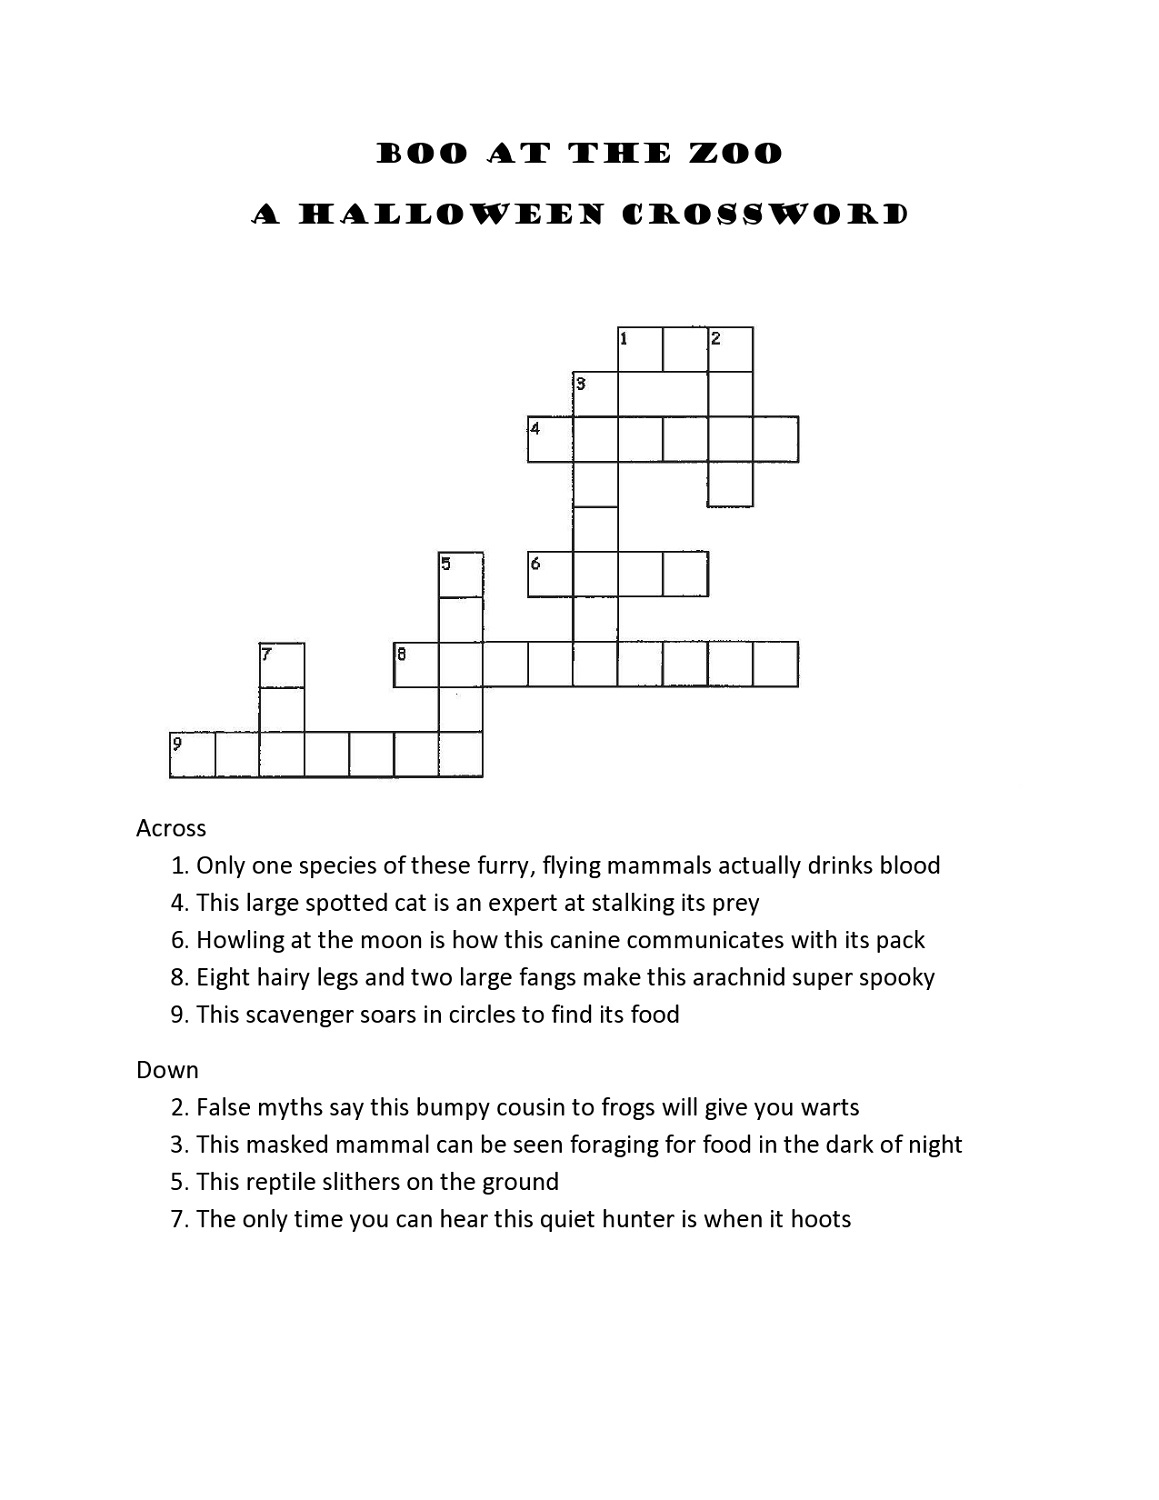 Crossword Puzzles For 5Th Graders   Activity Shelter - Printable Crossword Puzzles For Grade 7